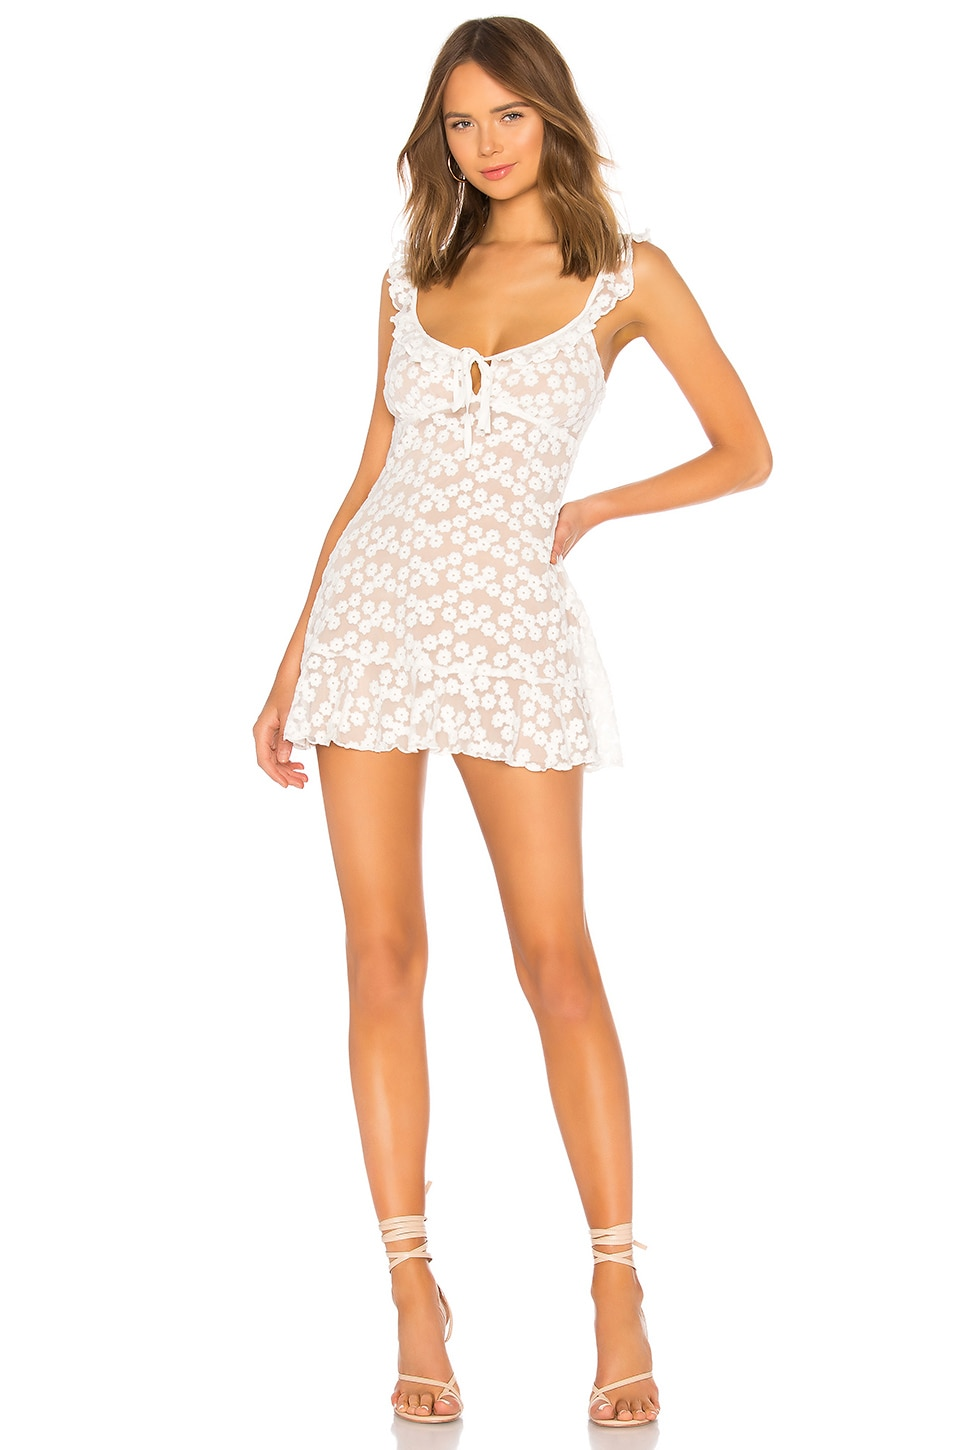 MAJORELLE Sunbeams Dress in White